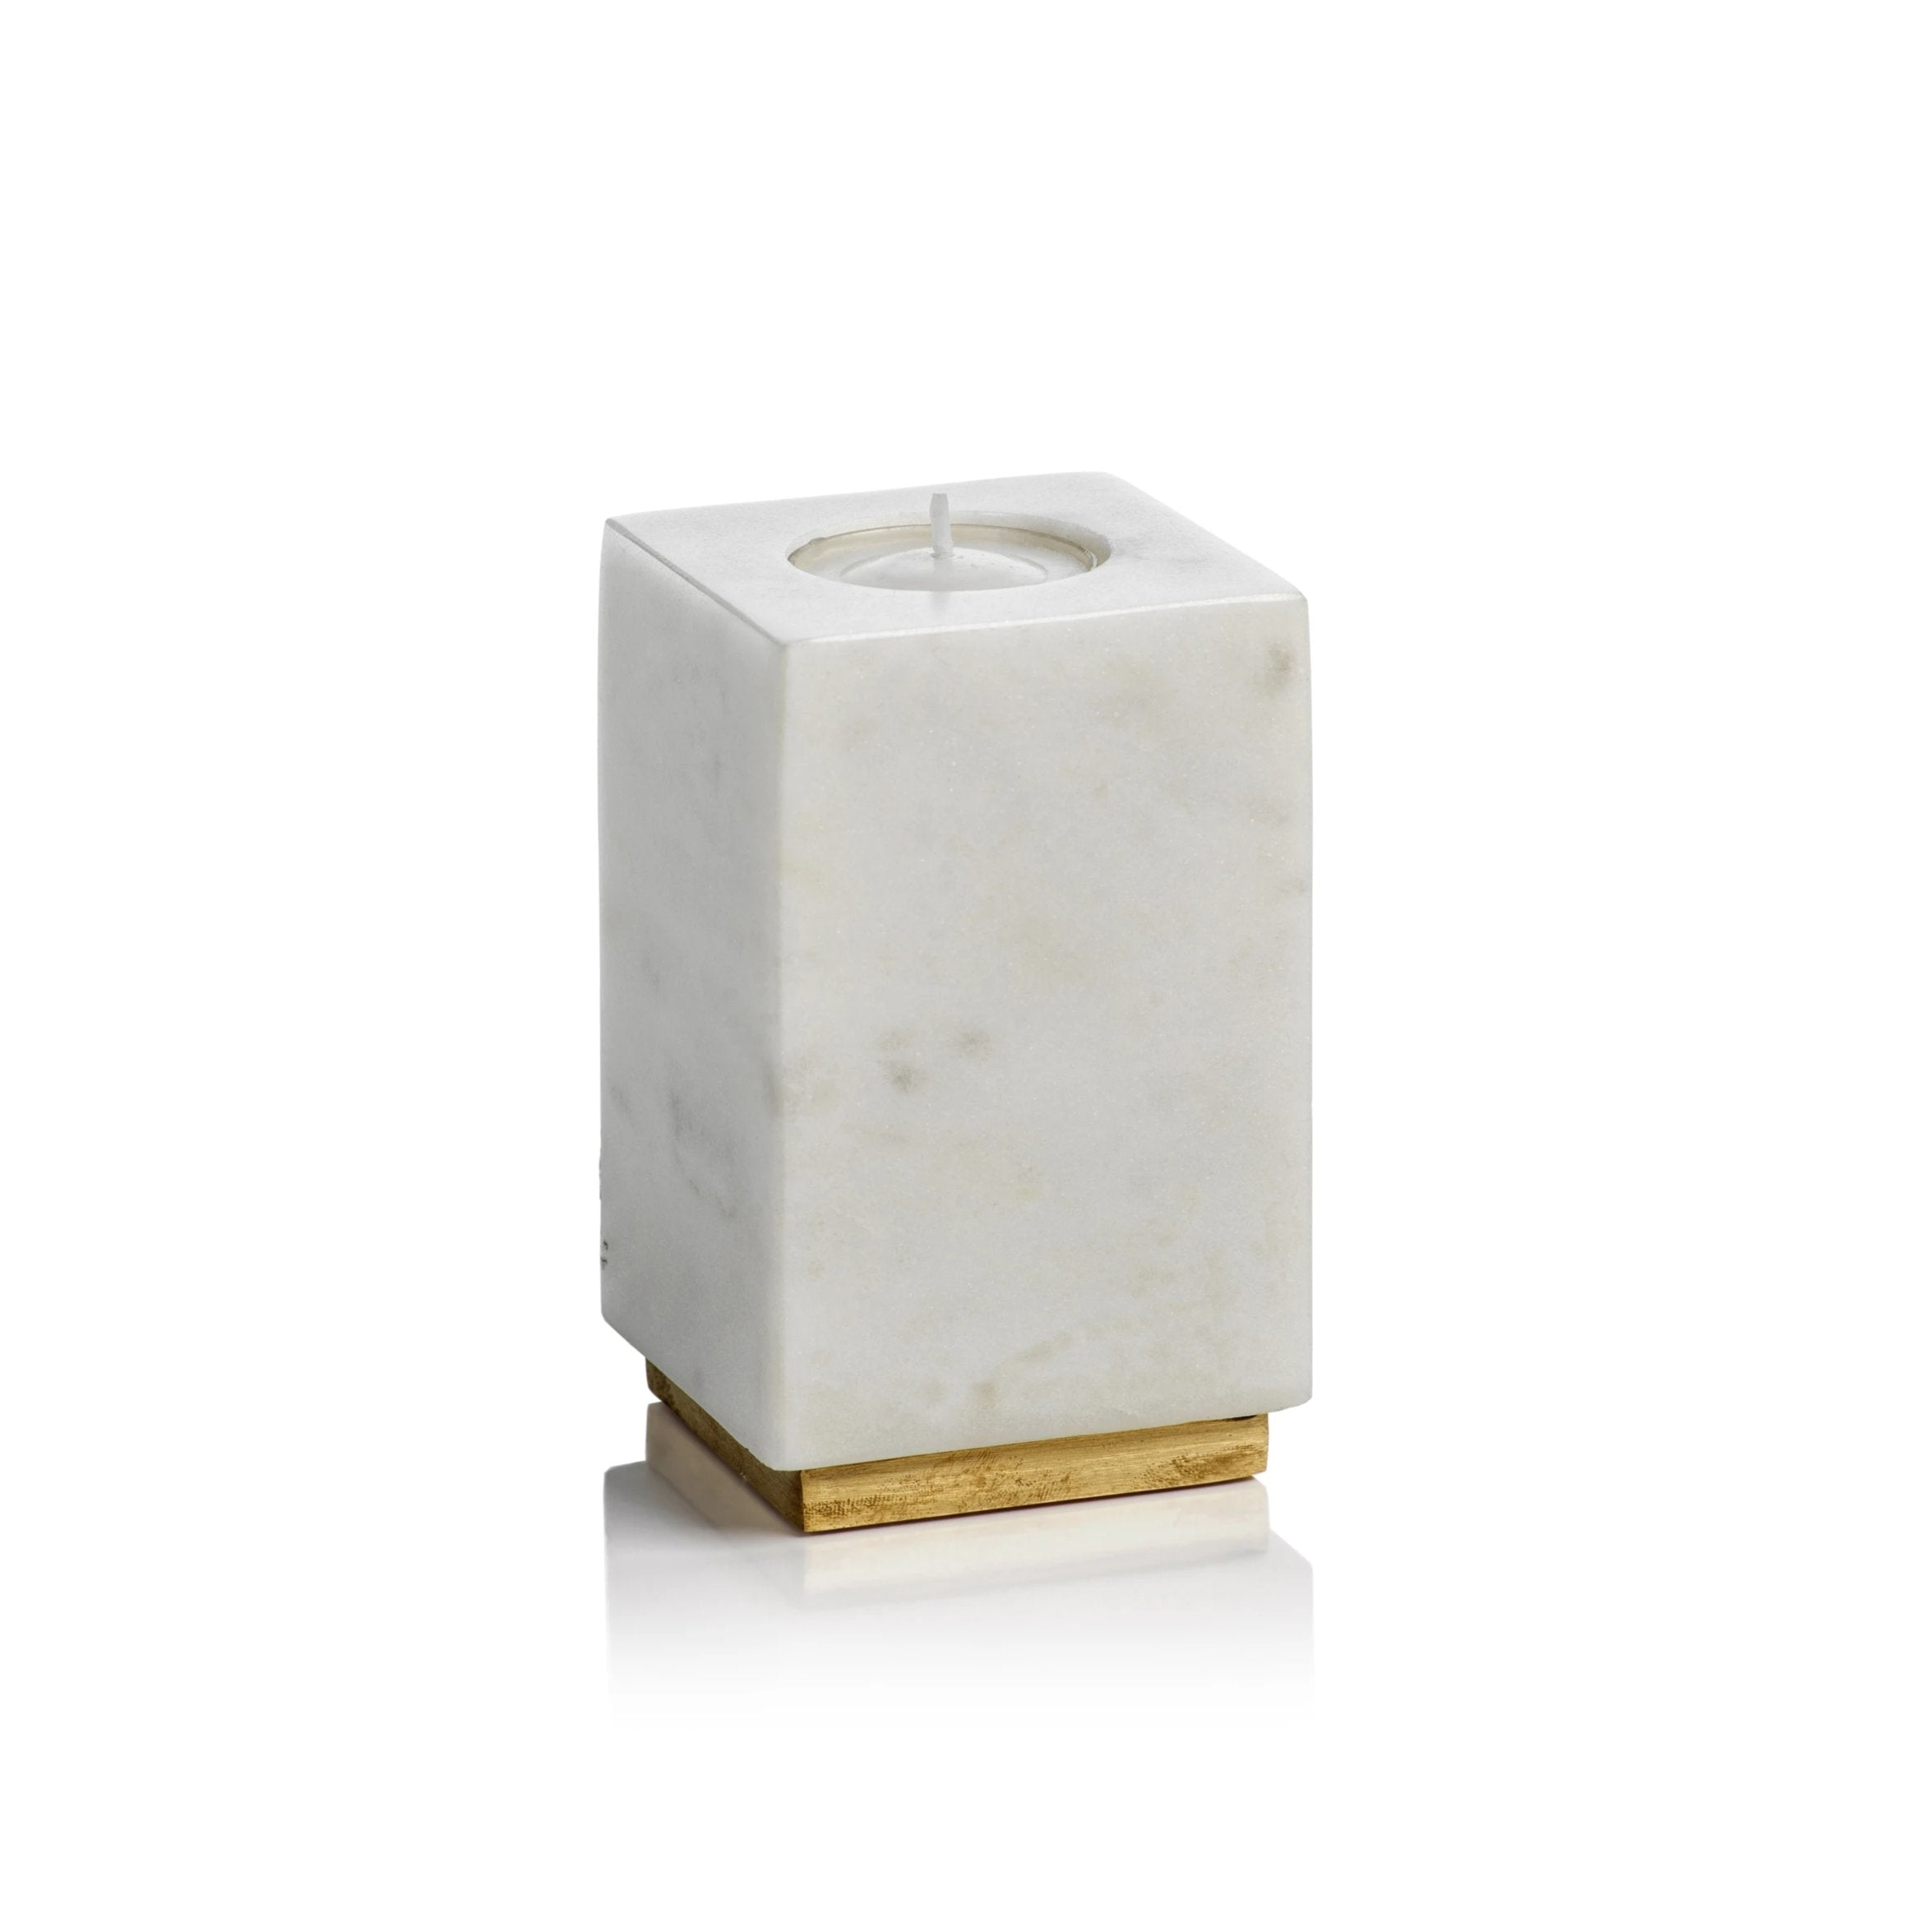 Tuscan White Marble Tealight Holder on Brass Base - CARLYLE AVENUE